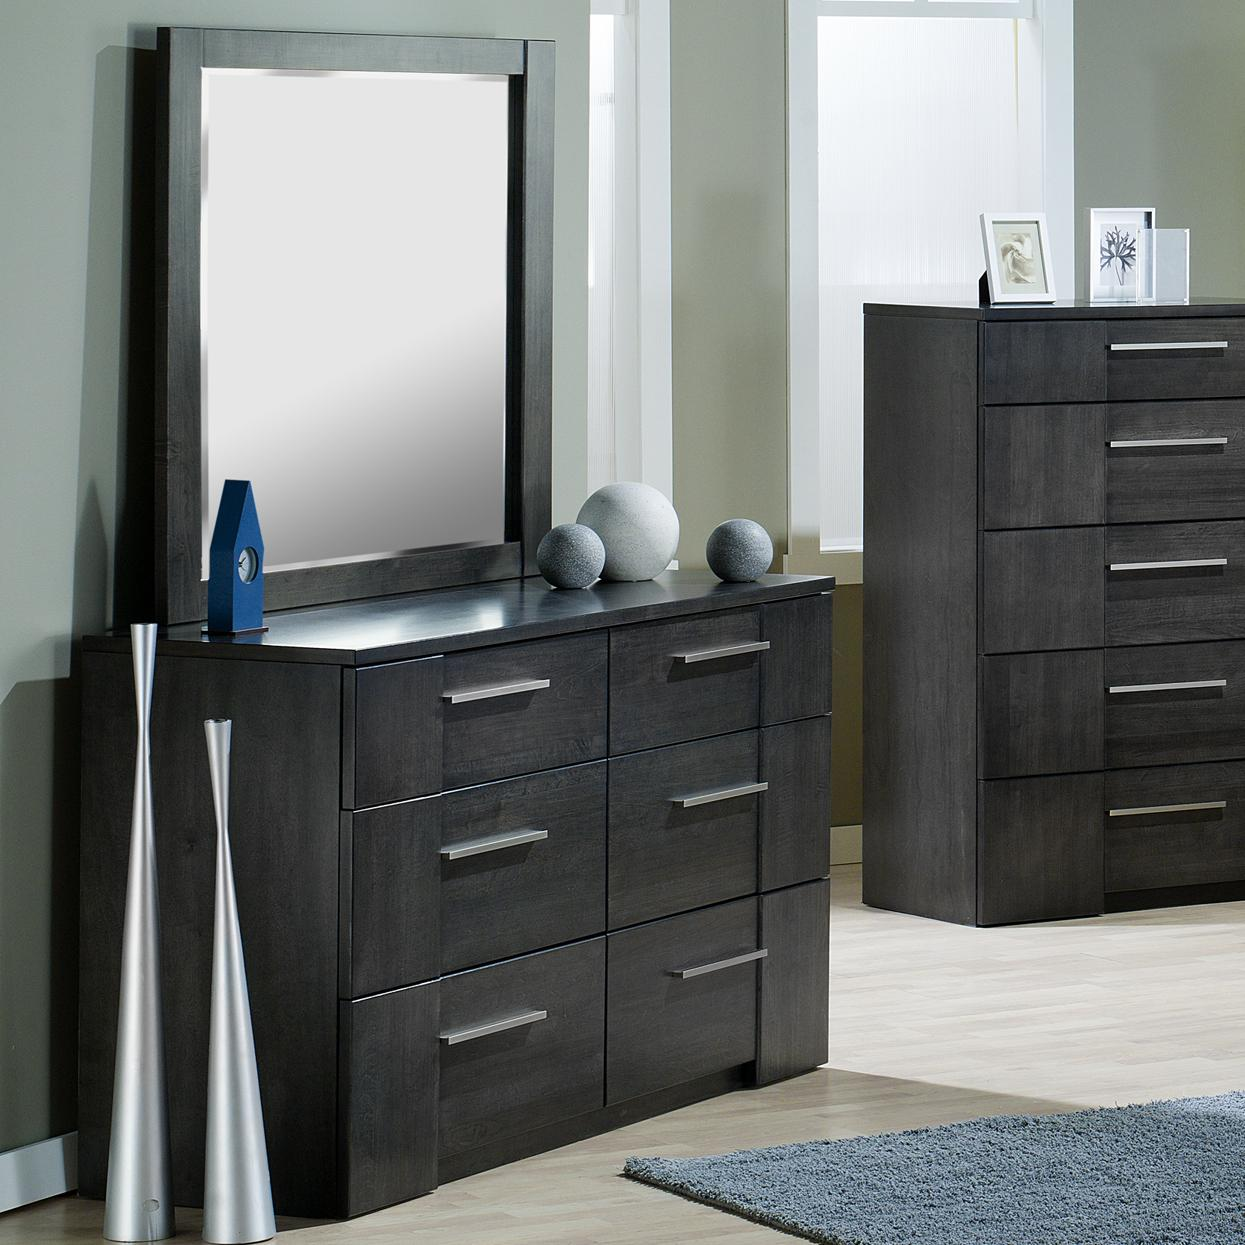 Milano Dresser and Mirror by Defehr at Stoney Creek Furniture